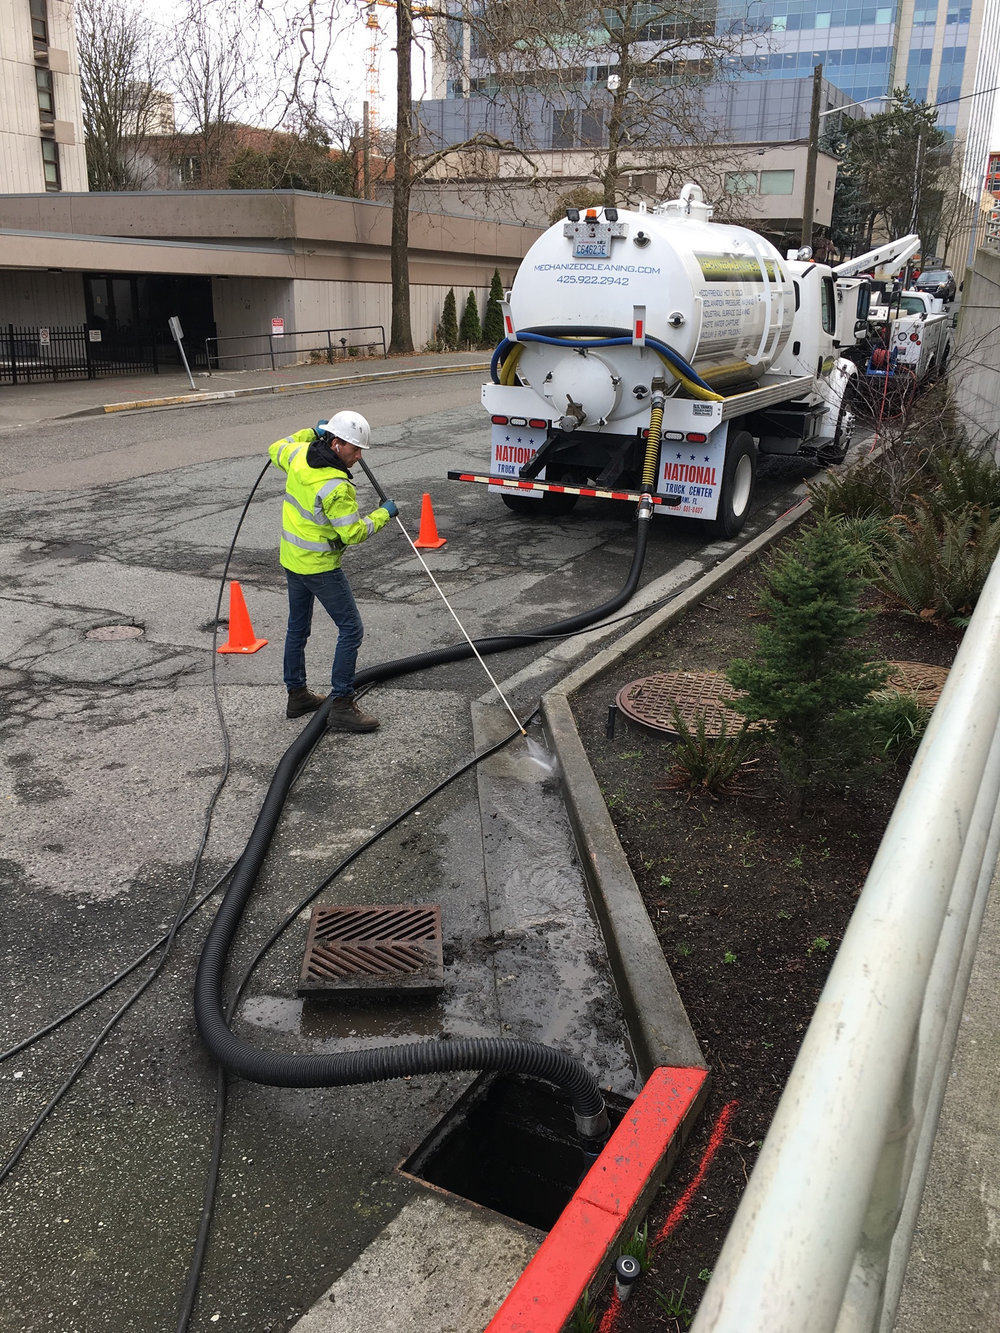 Storm Drain Catch Basin Cleaning Services Mechanized Cleaning